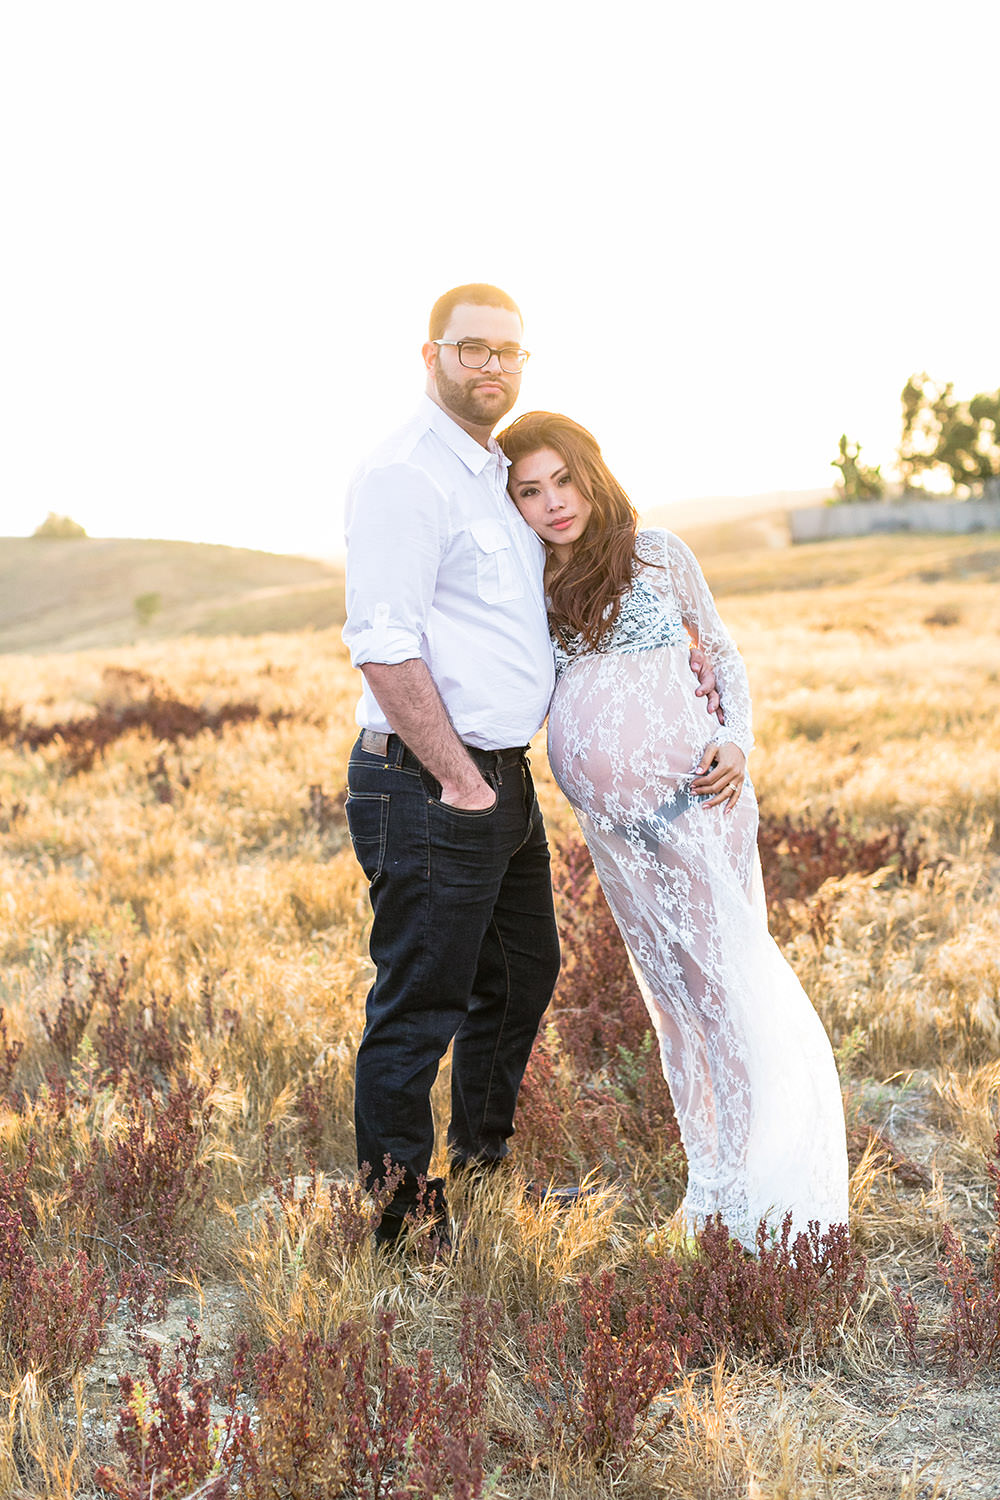 Maternity Session at trailhead in Chino Hills, California